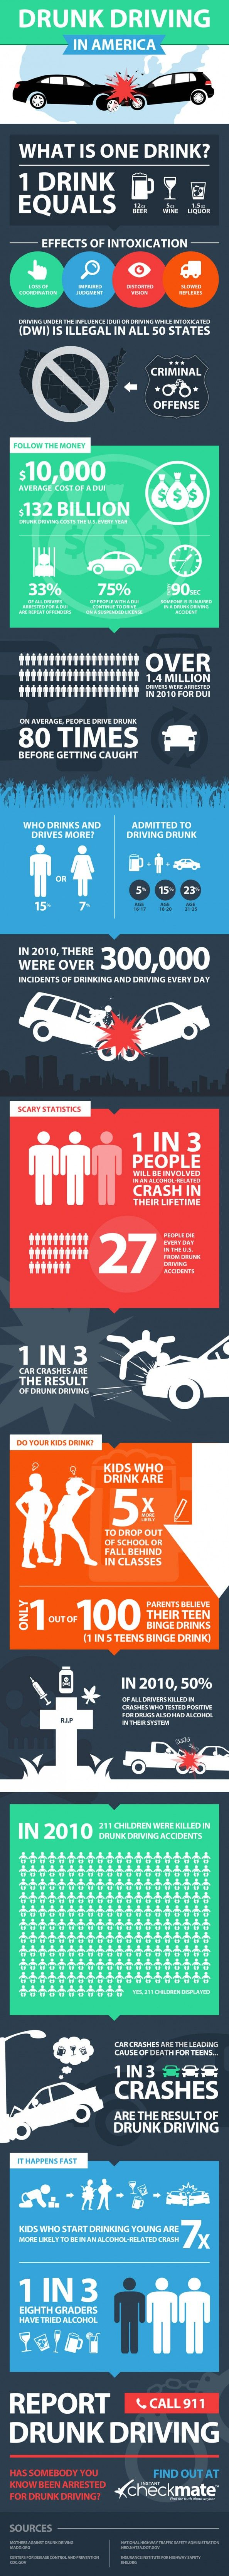 #DUI in #USA Infographic. #Educate #NoDUI #DesignatedDriver. #MADD @Neely James Against Drunk Driving (MADD)